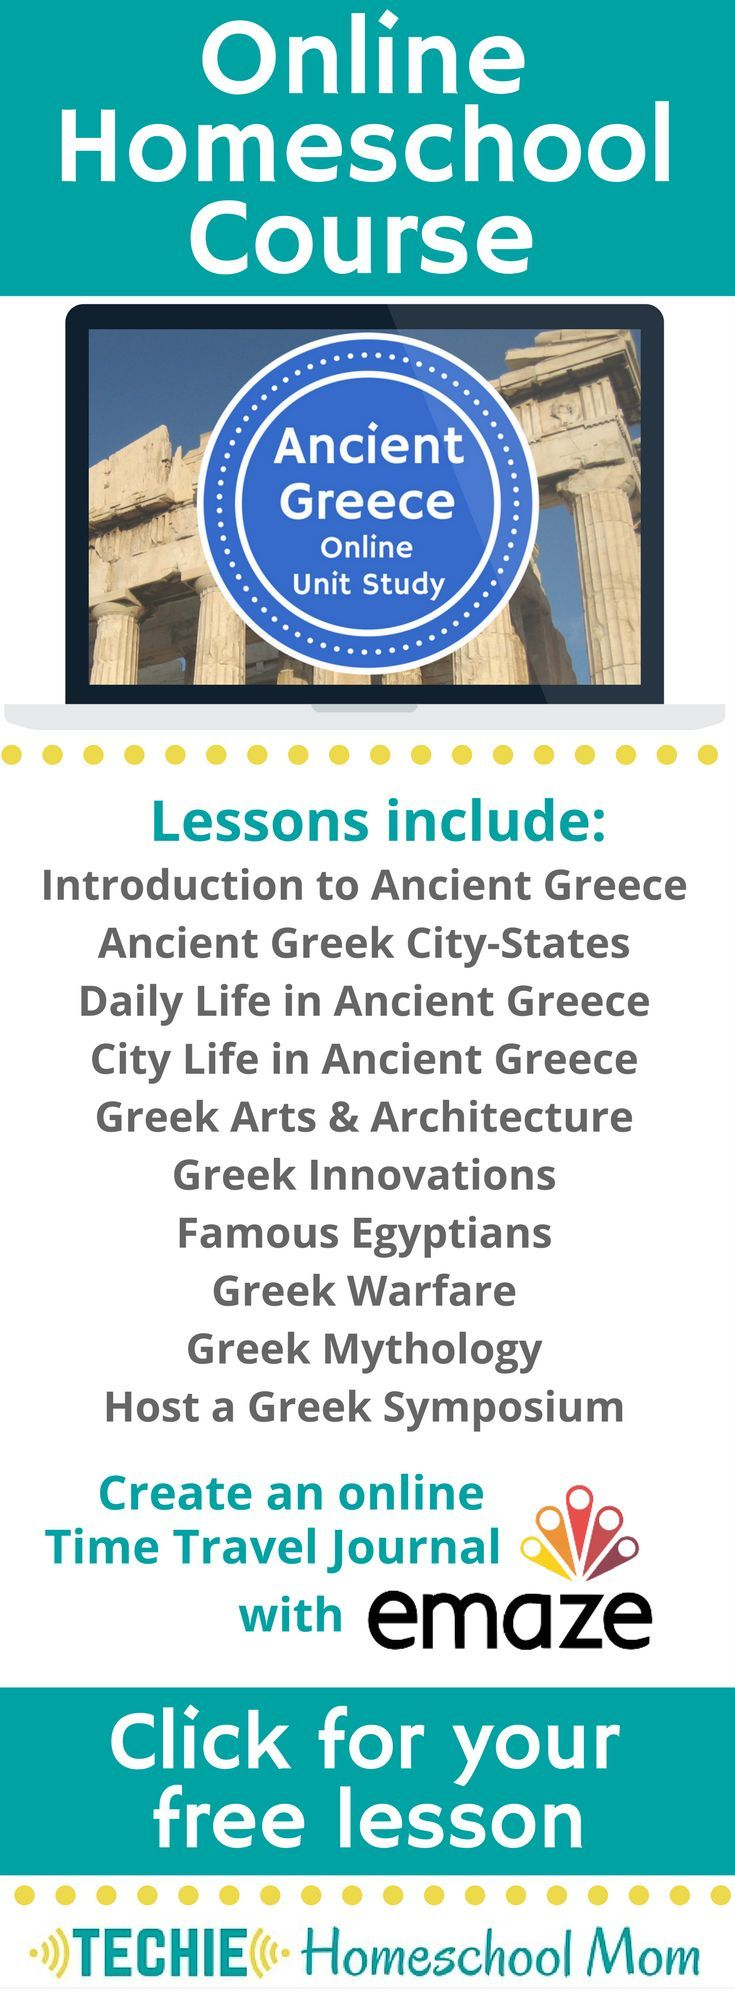 Try the Ancient Greece Online Unit Study. This online homeschool course integrates multiple subjects for multiple ages of students. Access websites and videos and complete digital projects. With Online Unit Studies' easy-to-use E-course format, no additional books or downloads are needed. Just gather supplies for hands-on projects and register for online tools. Click for your free lesson.